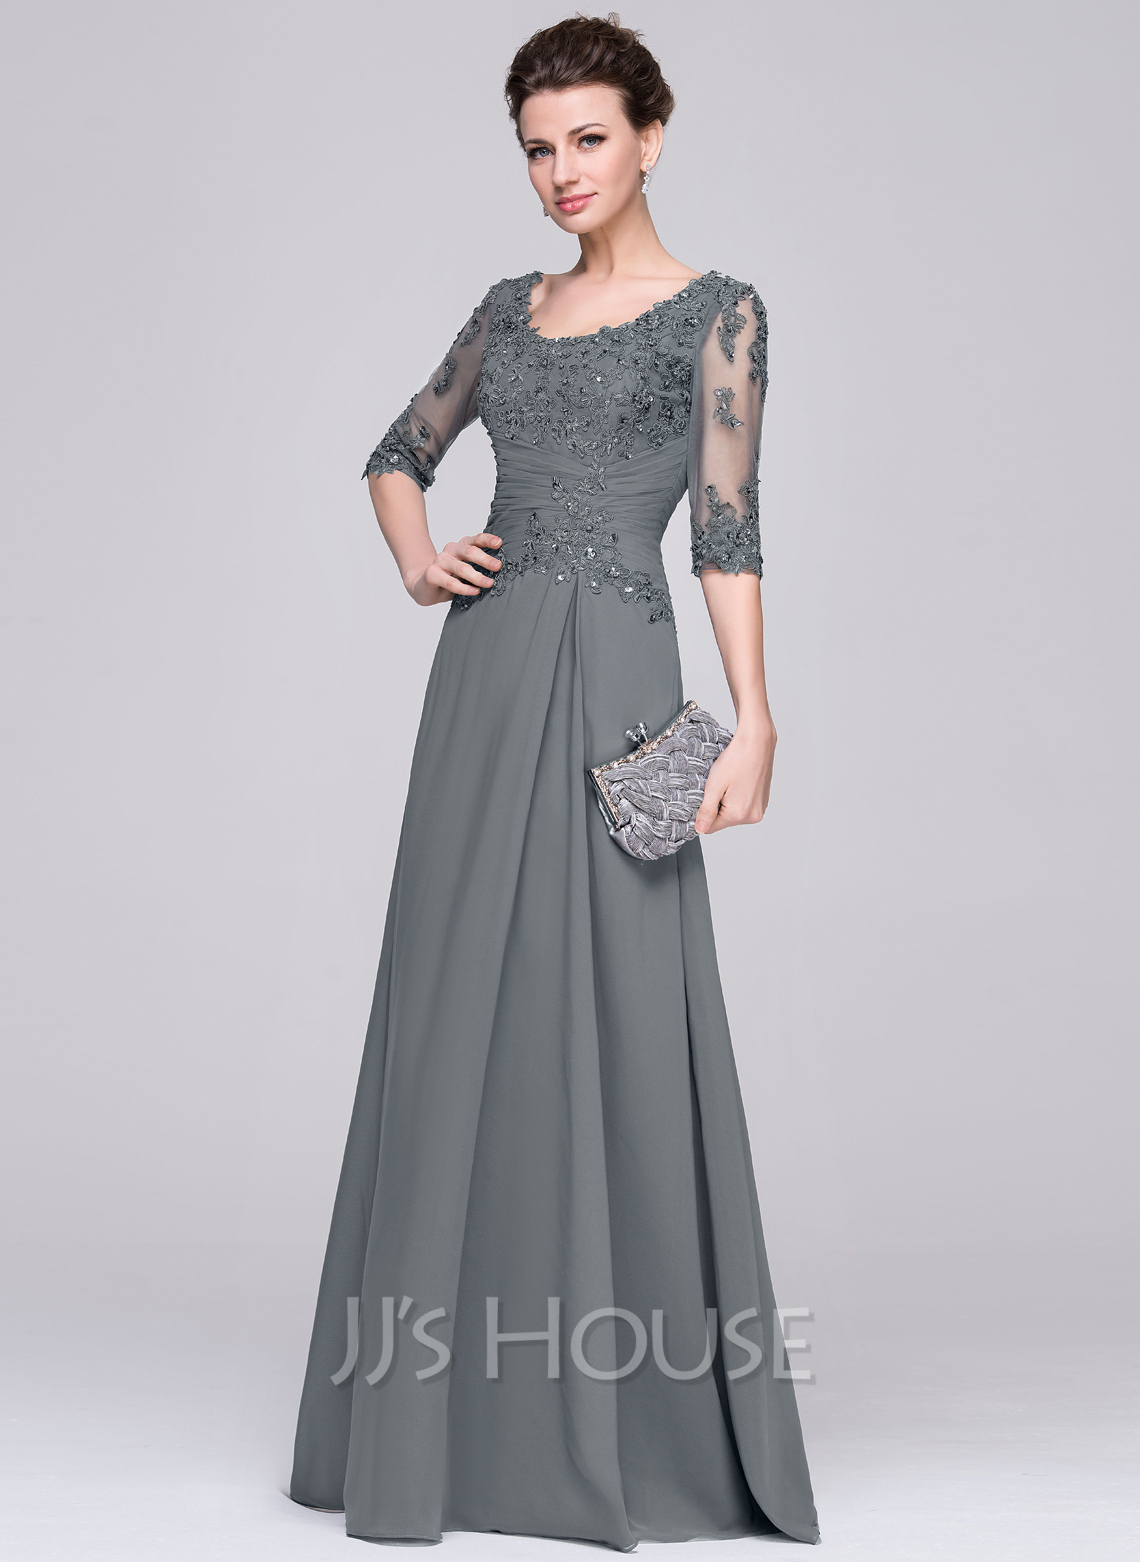 5ec99065f0028 A-Line/Princess Scoop Neck Floor-Length Chiffon Mother of the Bride Dress.  Loading zoom